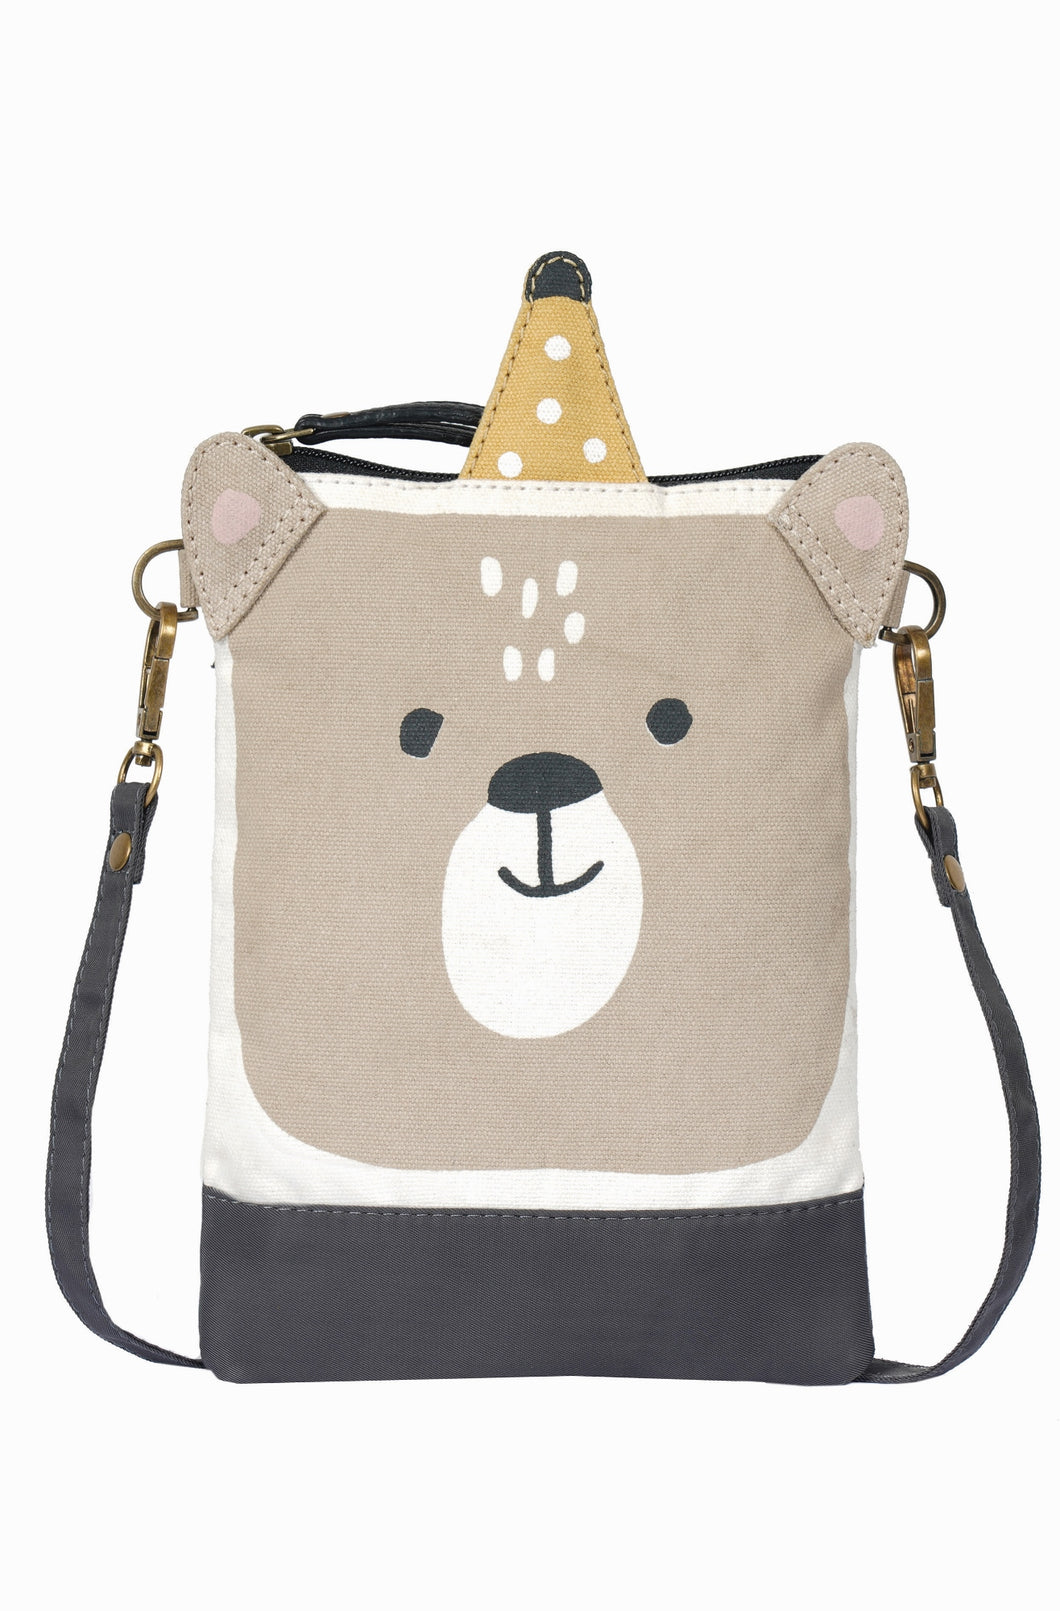 Teddy Bear Kids Sml Crossbody